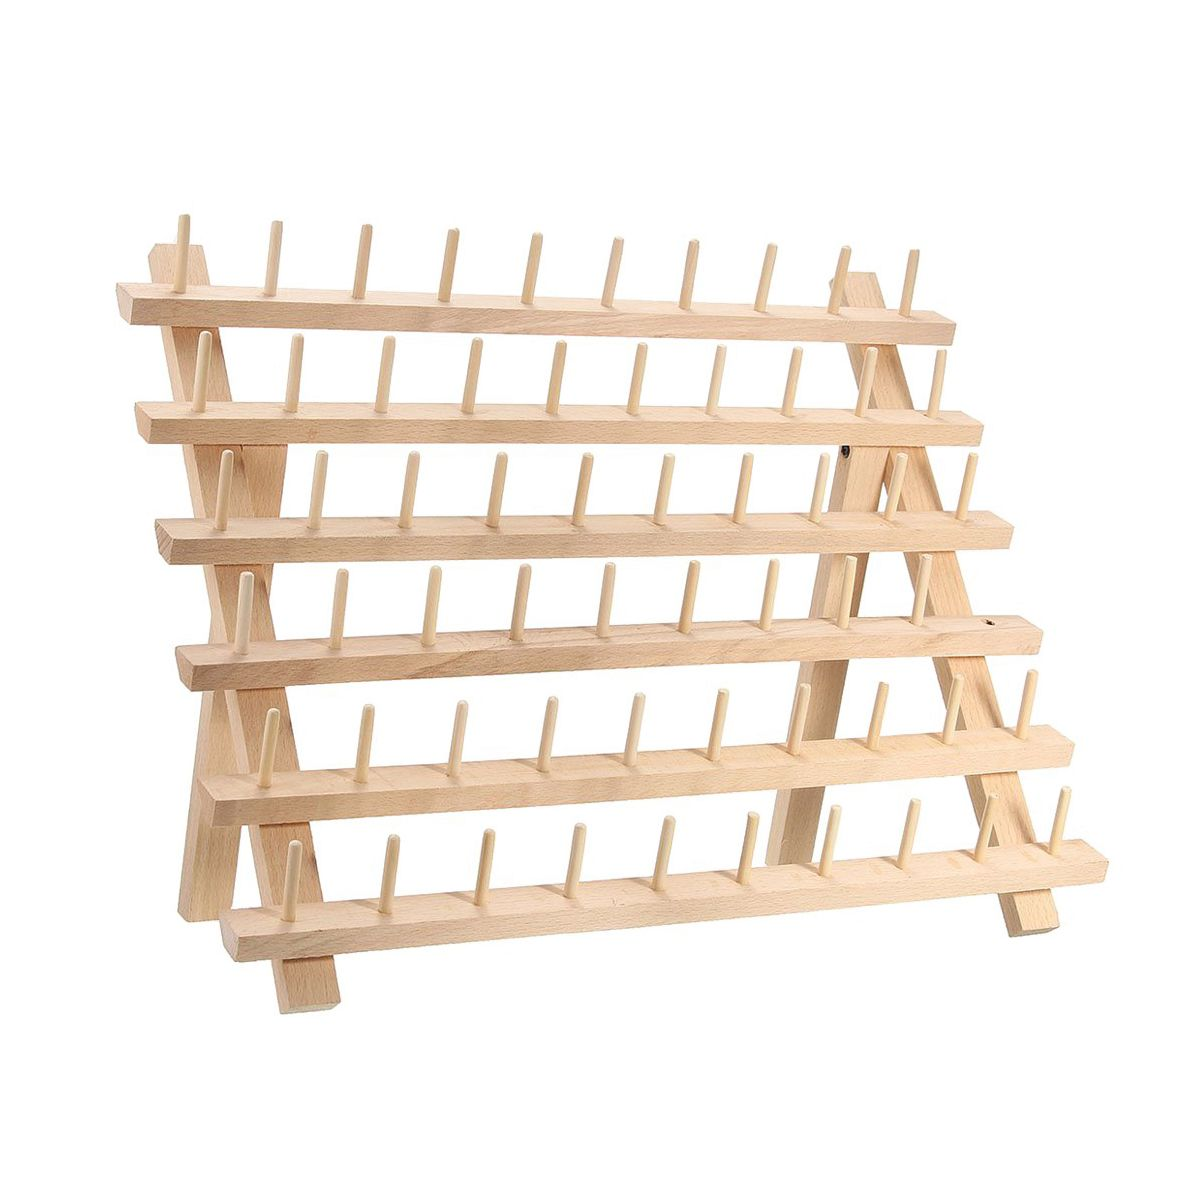 JEYL 60 Spool Wooden Thread Rack And Organizer For Sewing Quilting Embroidery